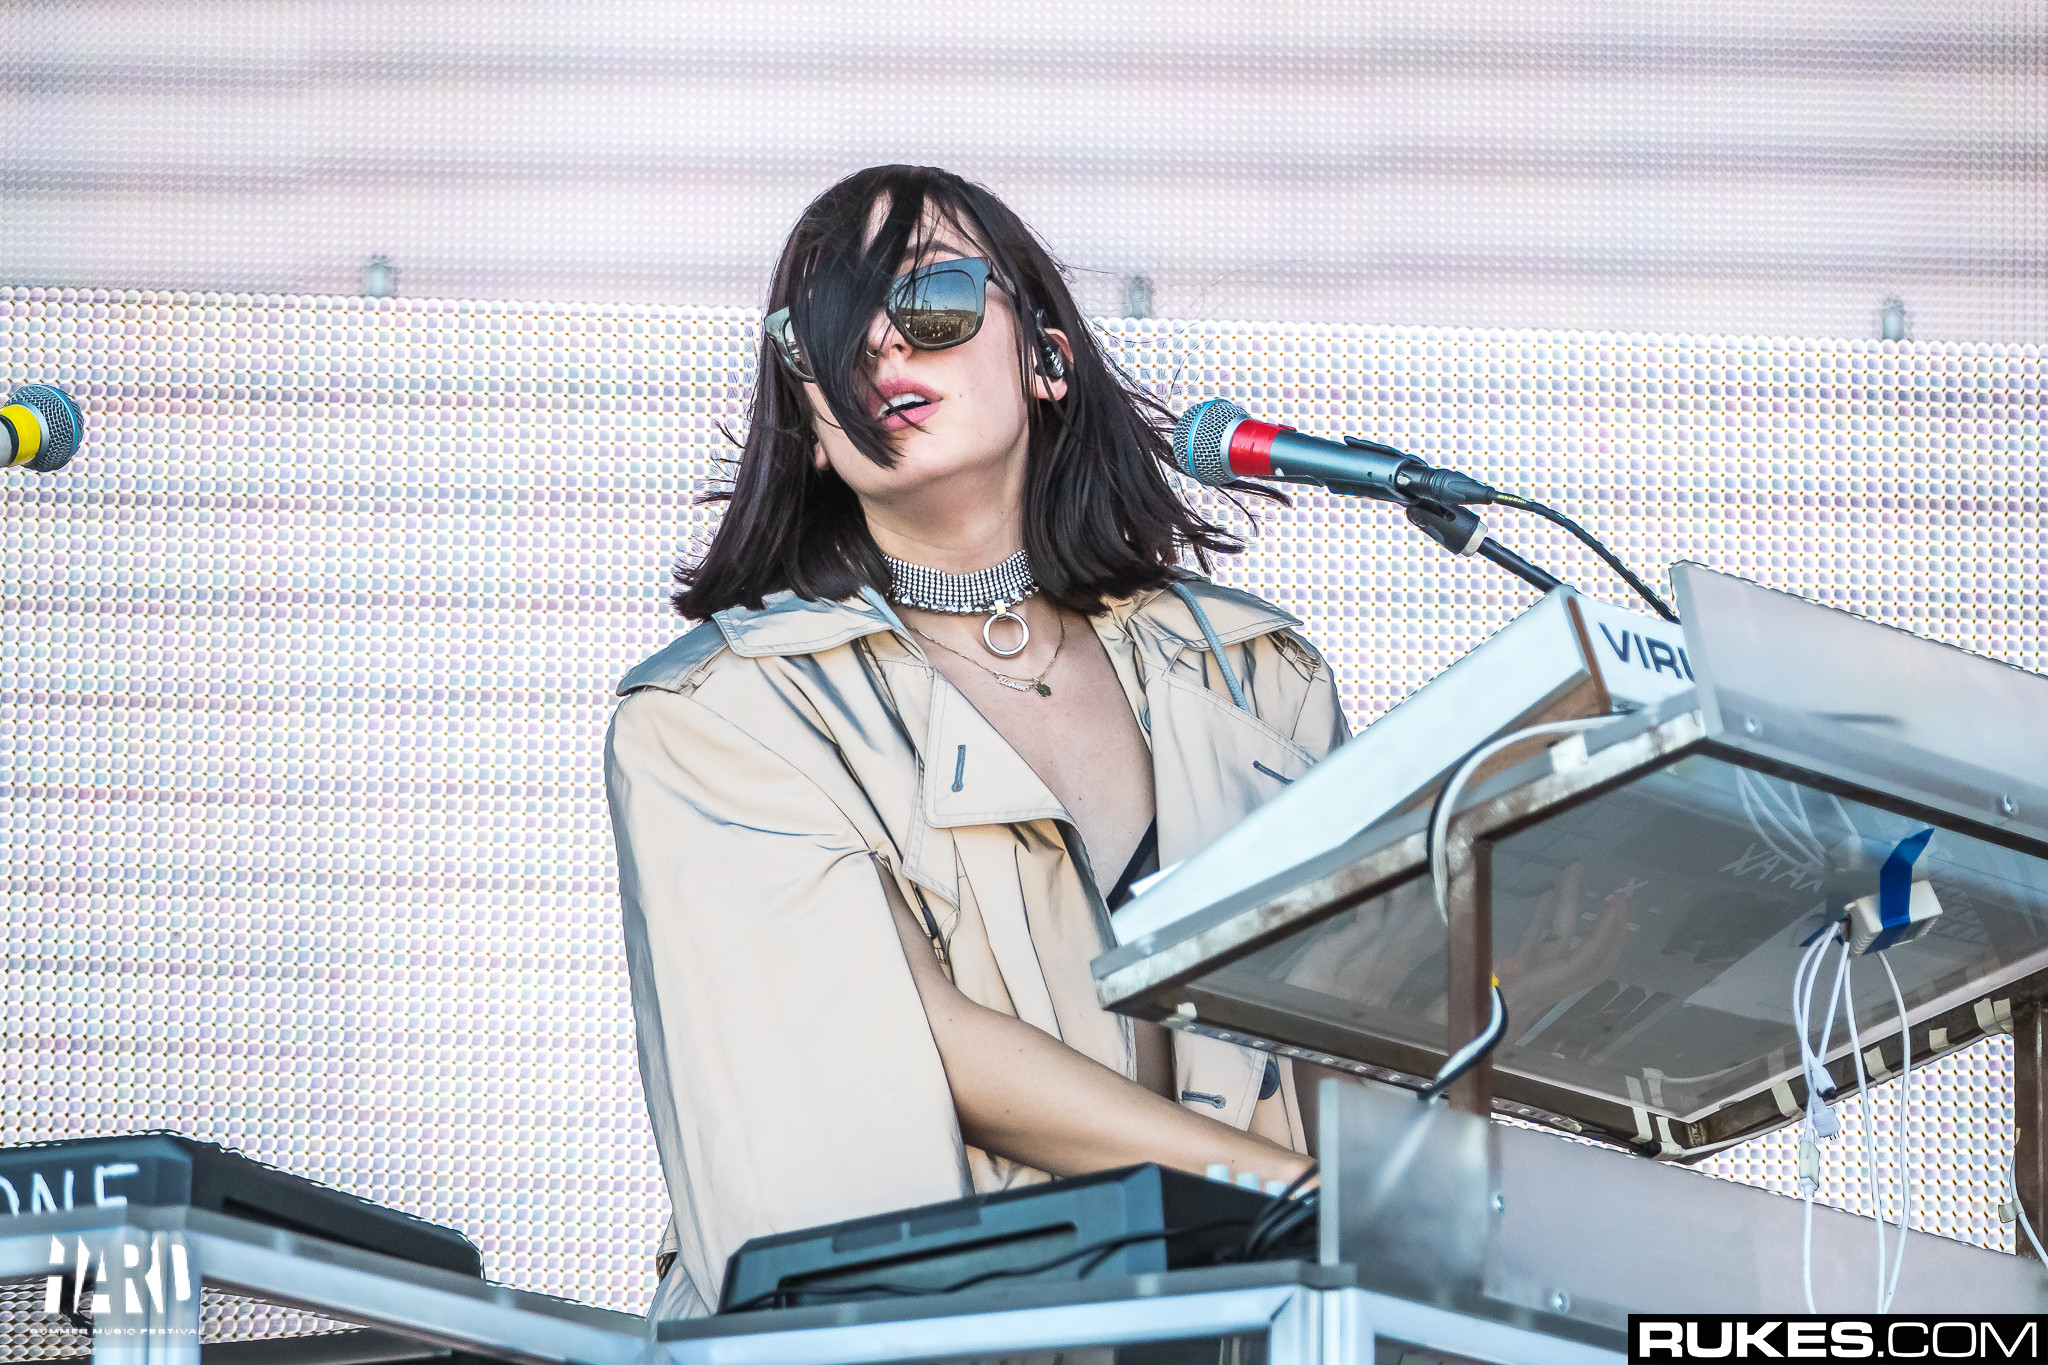 "https://www.youredm.com/ ""srcset ="" https://www.youredm.com/wp-content/uploads/2018/09/elohim-diva-hard-summer-2018-rukes.jpg 2048w, https : //www.youredm.com/wp-content/uploads/2018/09/elohim-diva-hard-summer-2018-rukes-768x512.jpg 768w, https://www.youredm.com/wp-content/ uploads / 2018/09 / elohim-diva-hard-summer-2018-rukes-1024x683.jpg 1024w, https://www.youredm.com/wp-content/uploads/2018/09/elohim-diva-hard-summer -2018-rukes-360x240.jpg 360w ""tailles ="" (largeur max: 2048px) 100vw, 2048px ""/></div> </div> <section class="